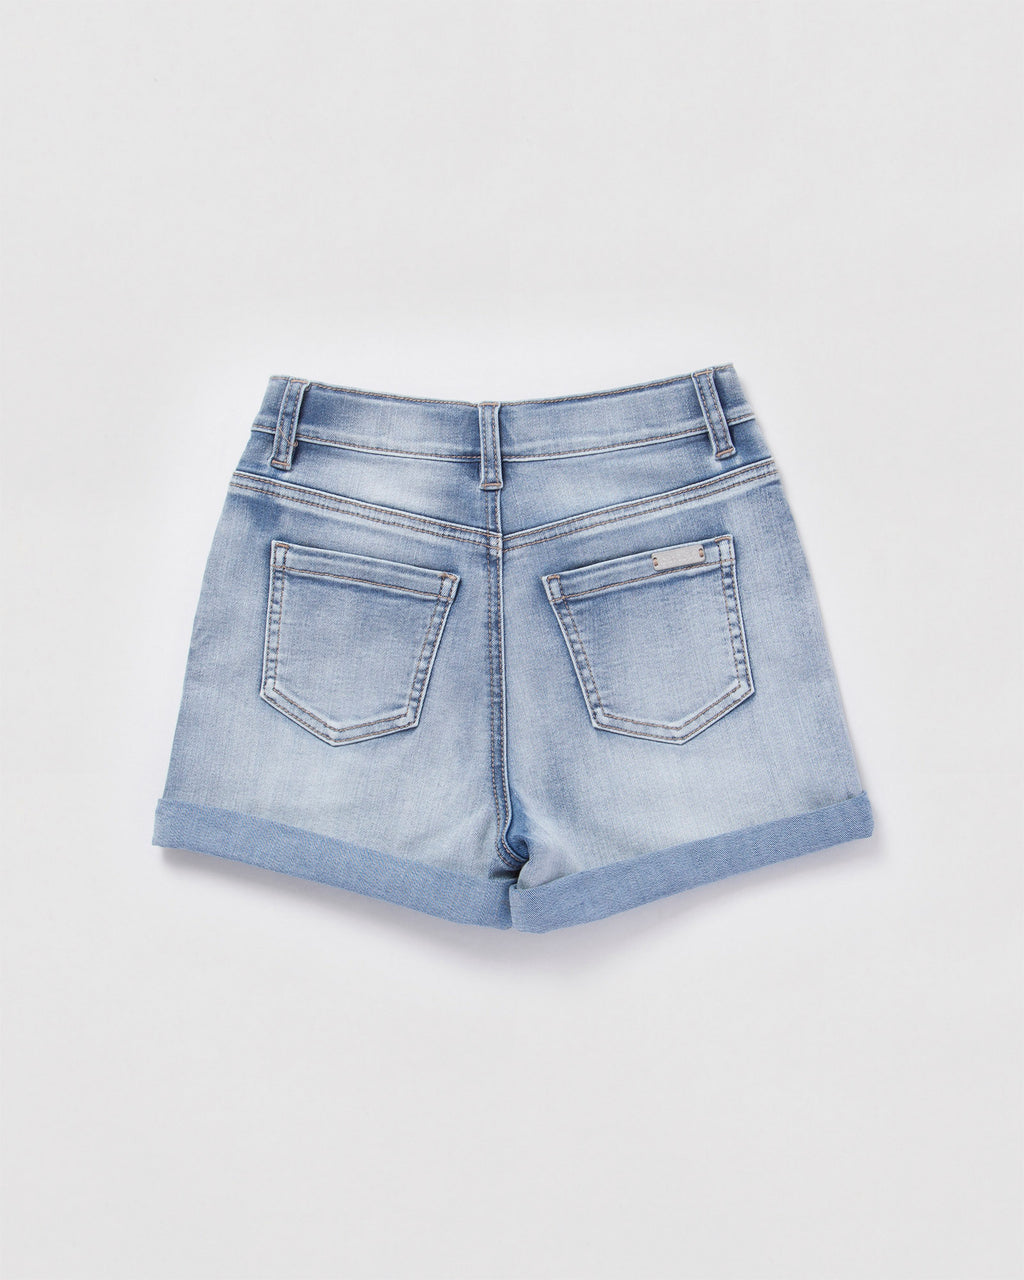 denim short - vintage wash